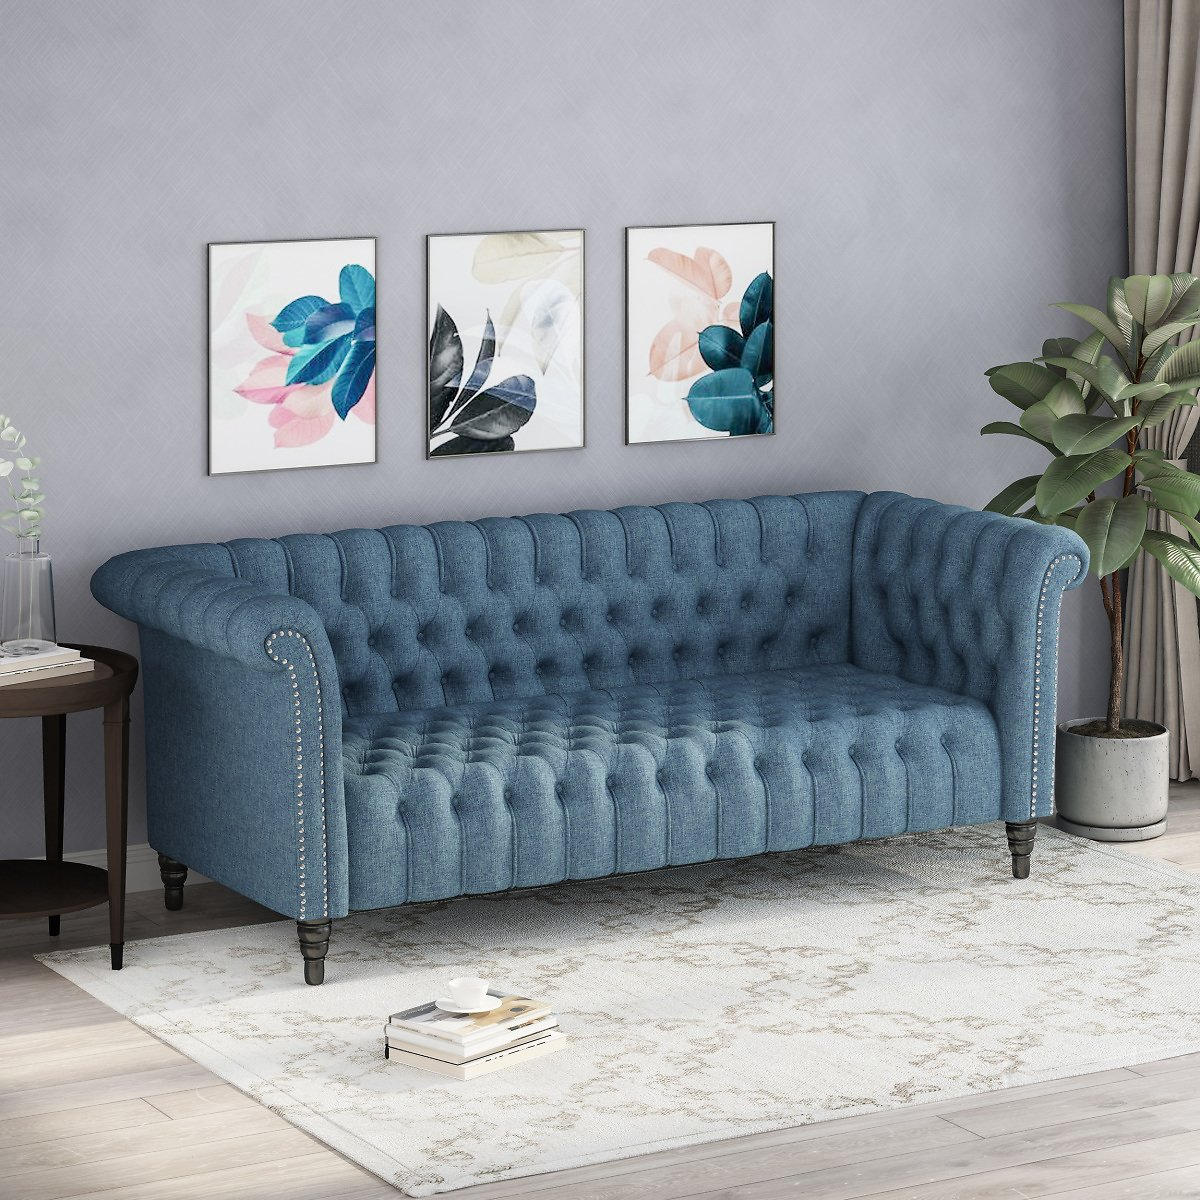 Noble House Xavier Traditional Chesterfield Sofa with Tufted Cushions, Blue and Black